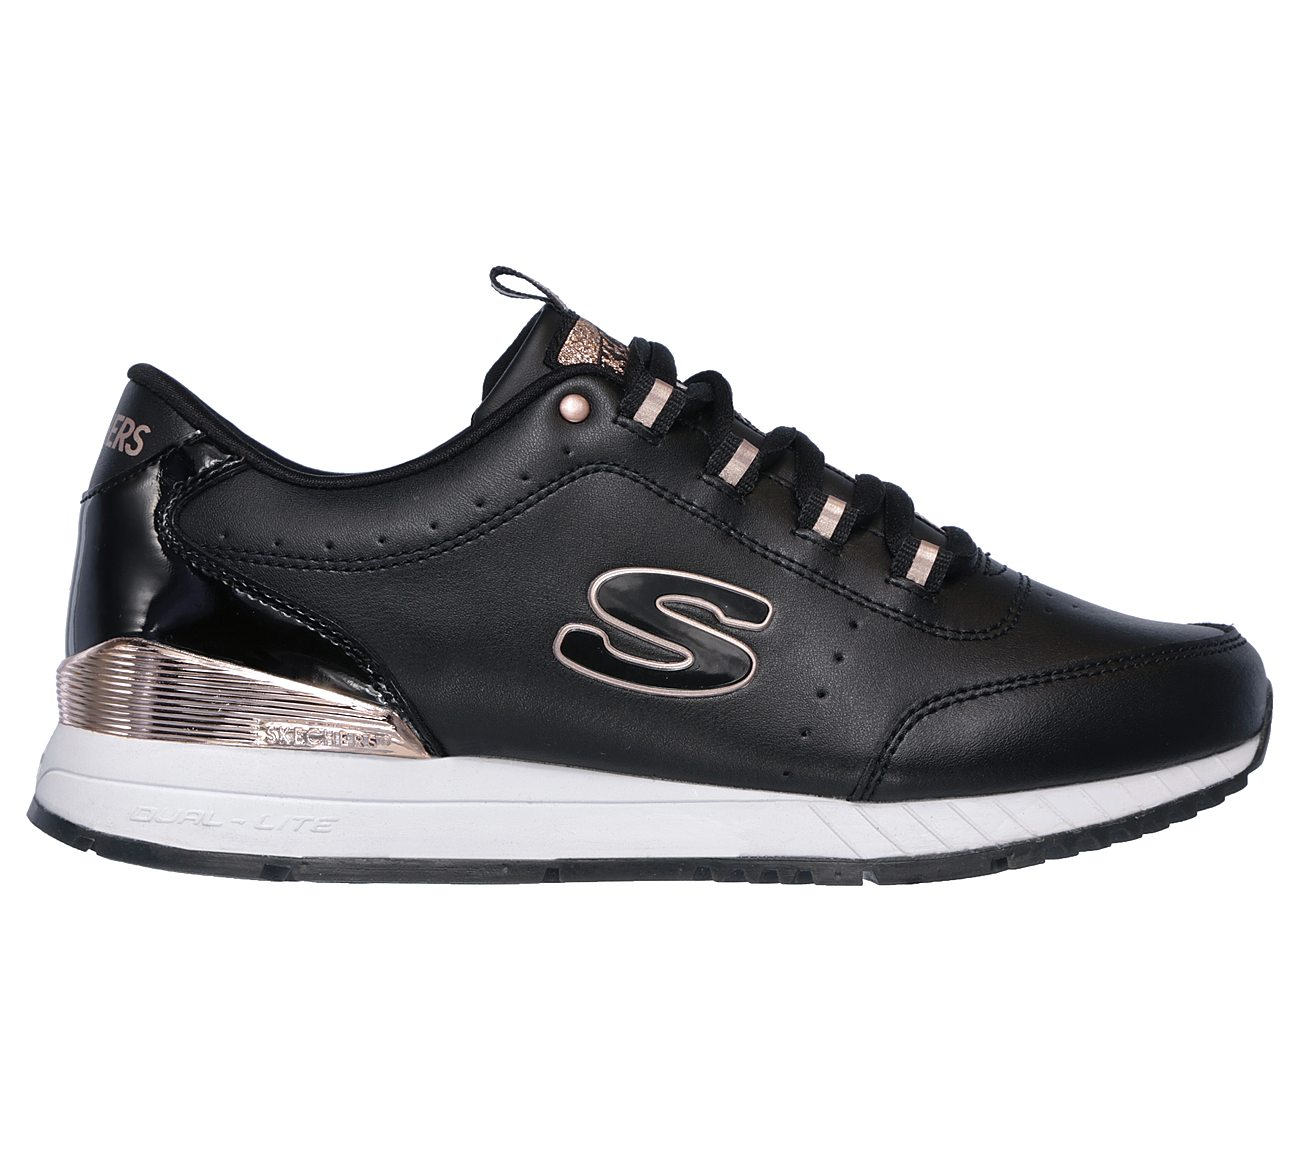 Sunlite - Delightfully OG SKECHERS Performance 6N33tgB